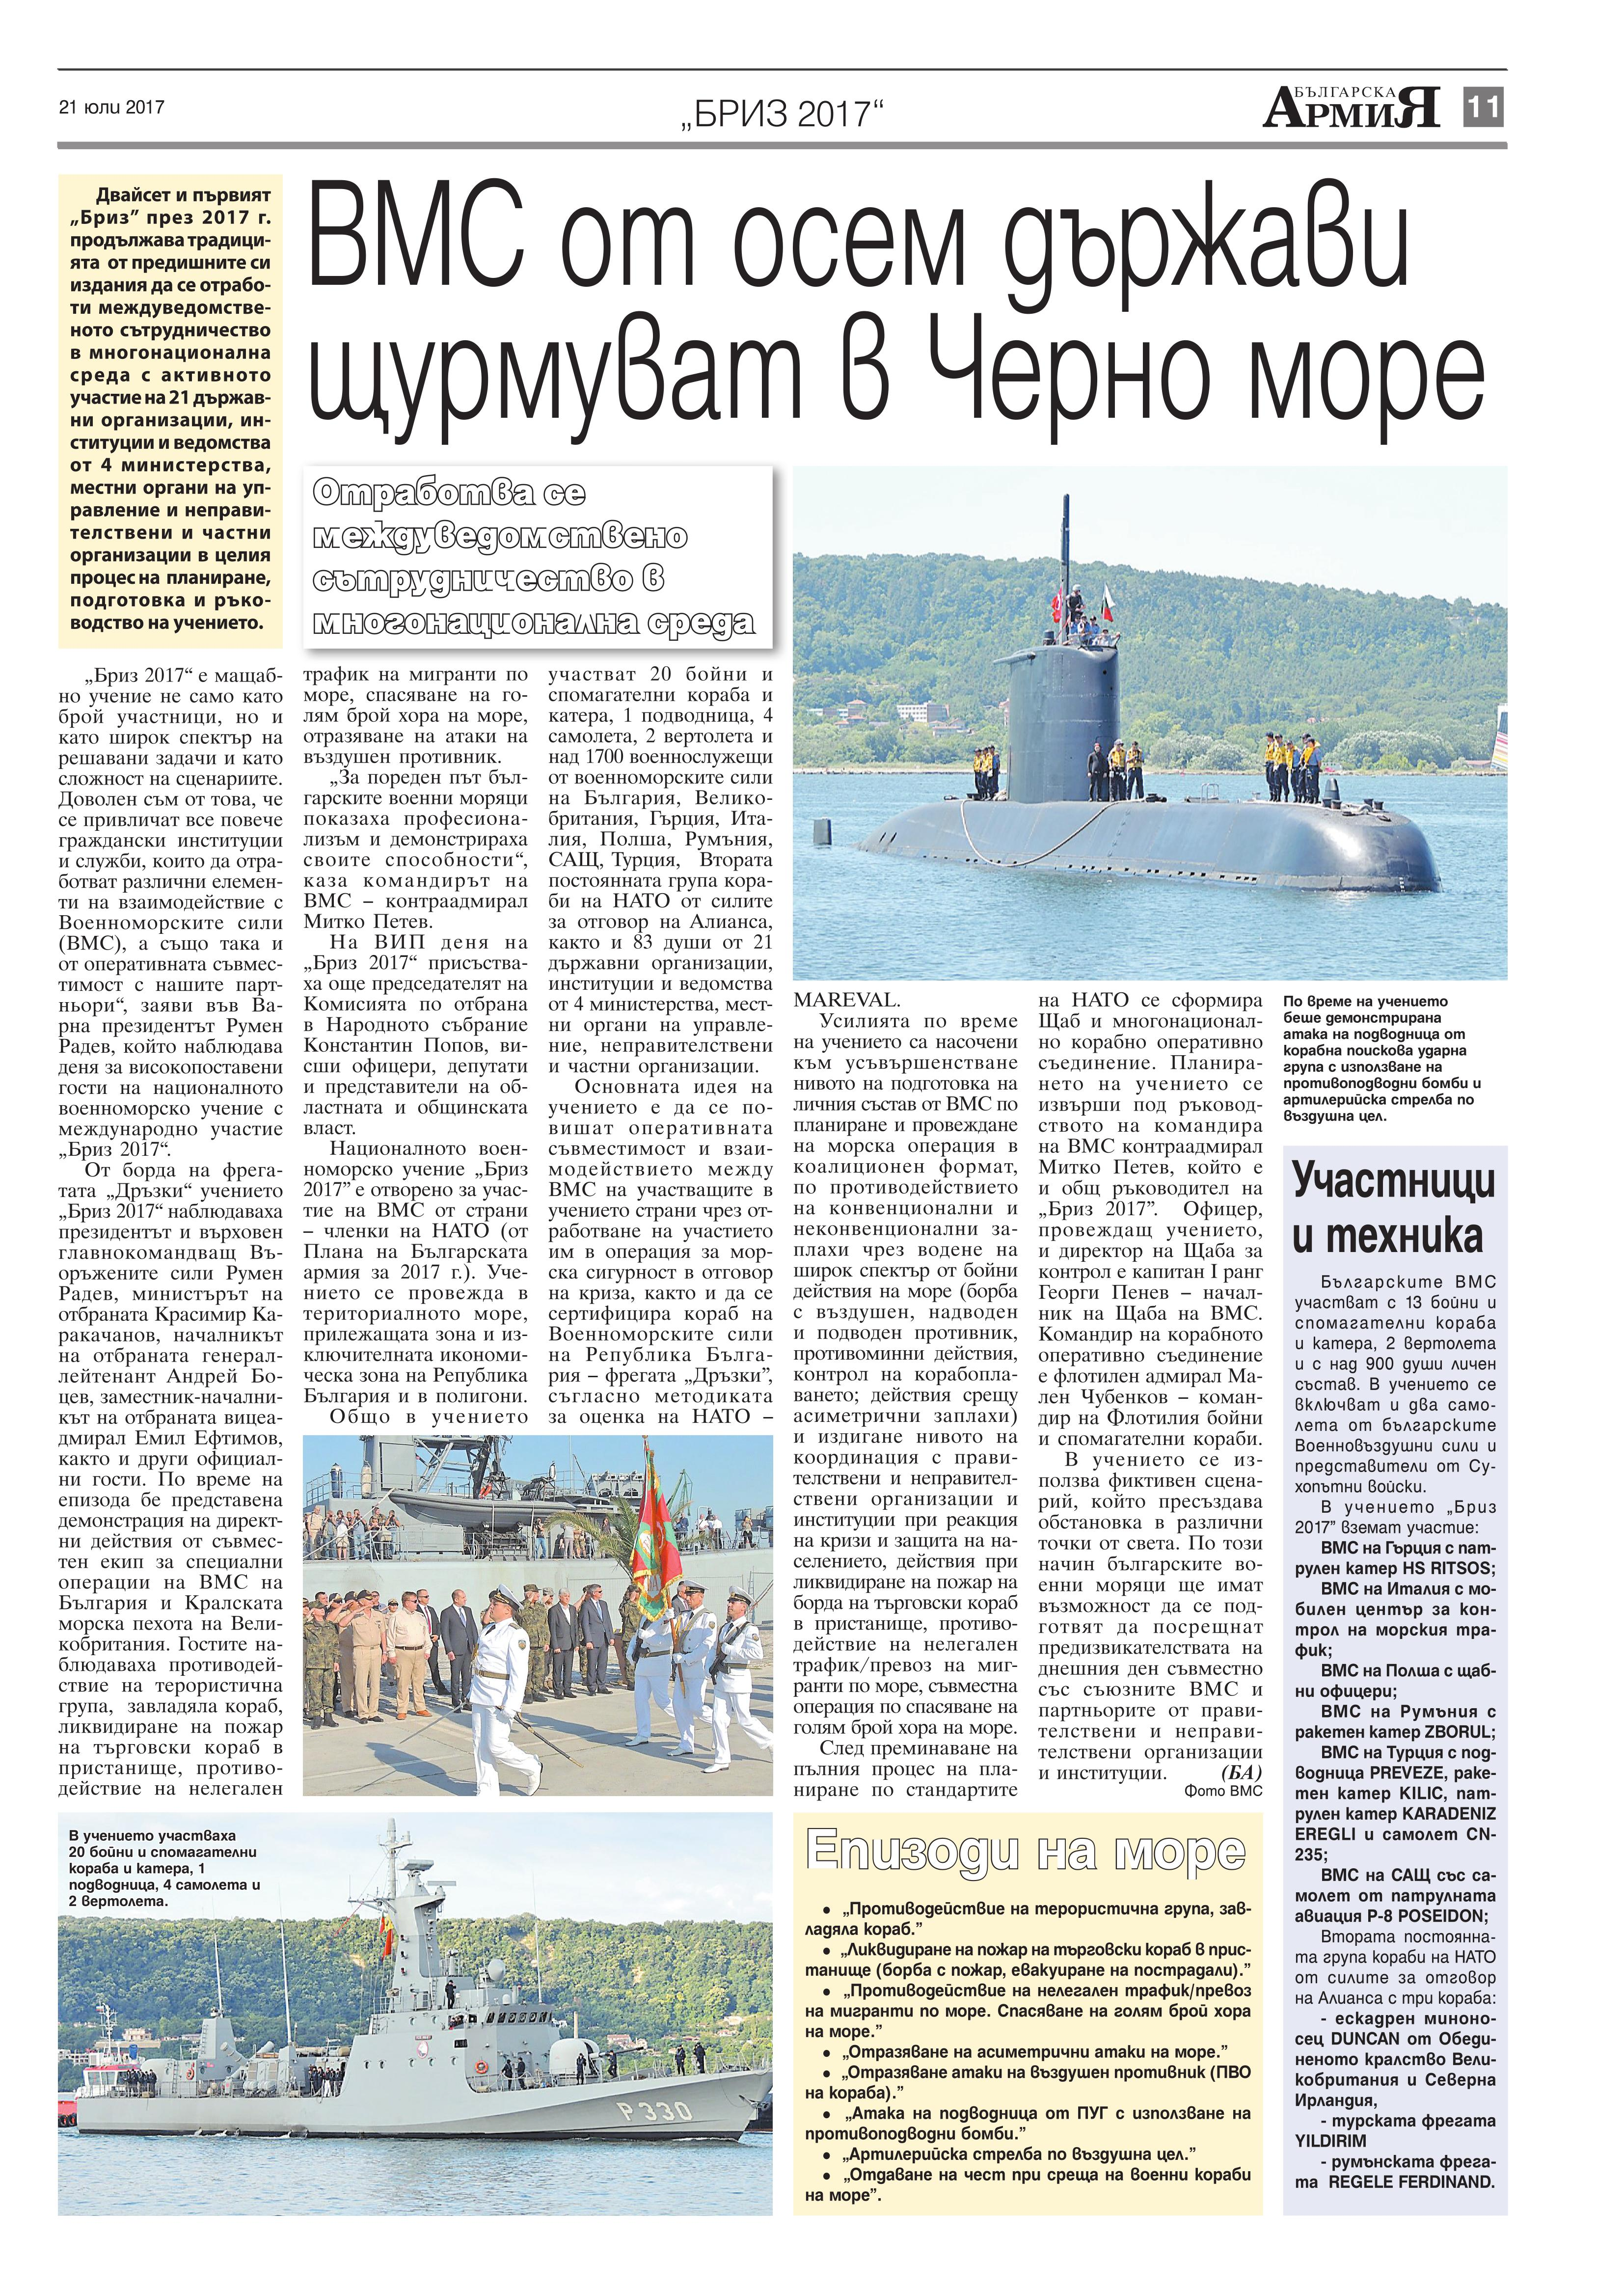 https://www.armymedia.bg/wp-content/uploads/2015/06/11.page1_-26.jpg